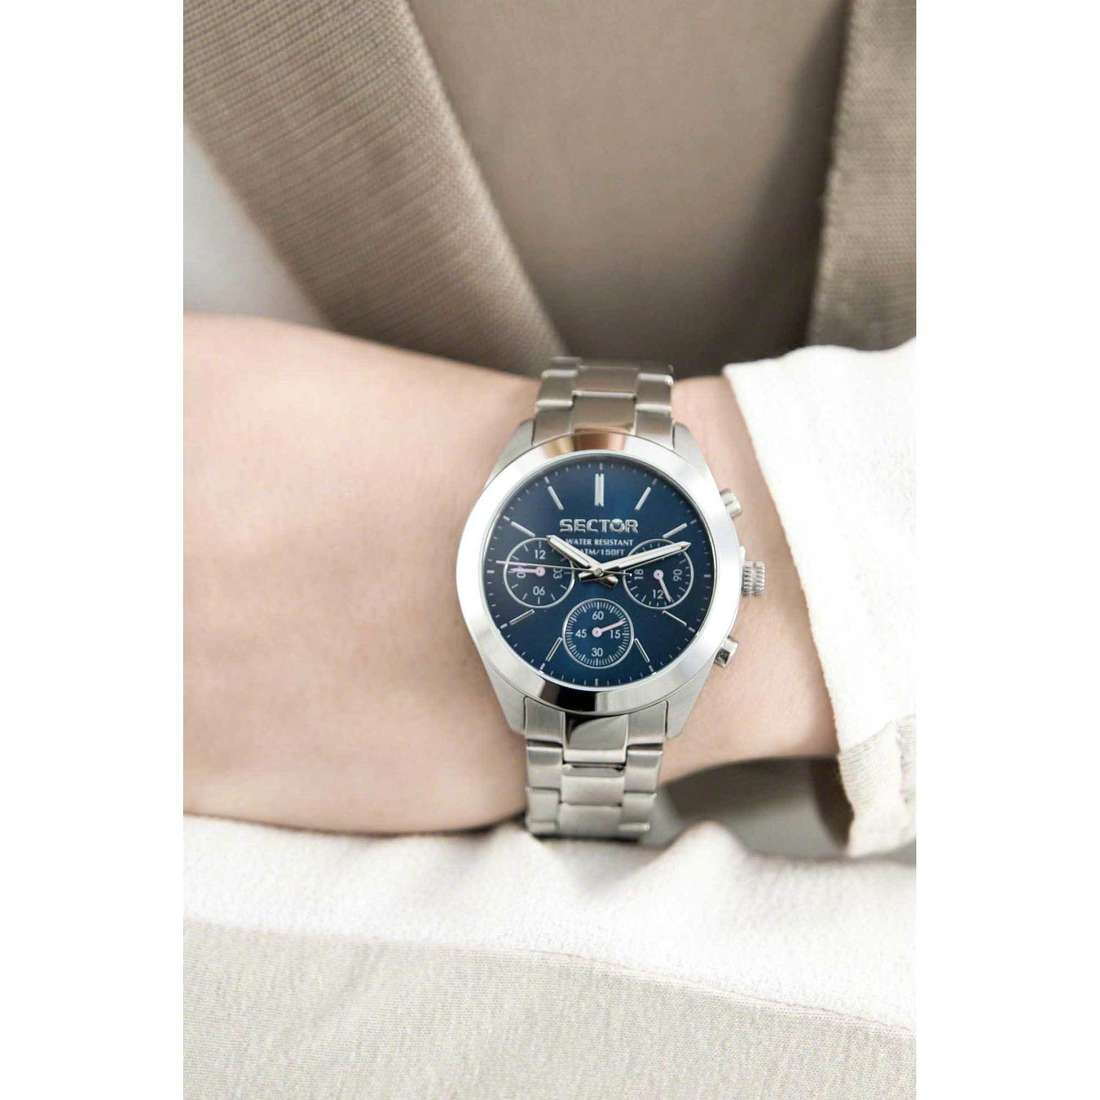 Sector chronographes 120 femme R3253588501 indosso